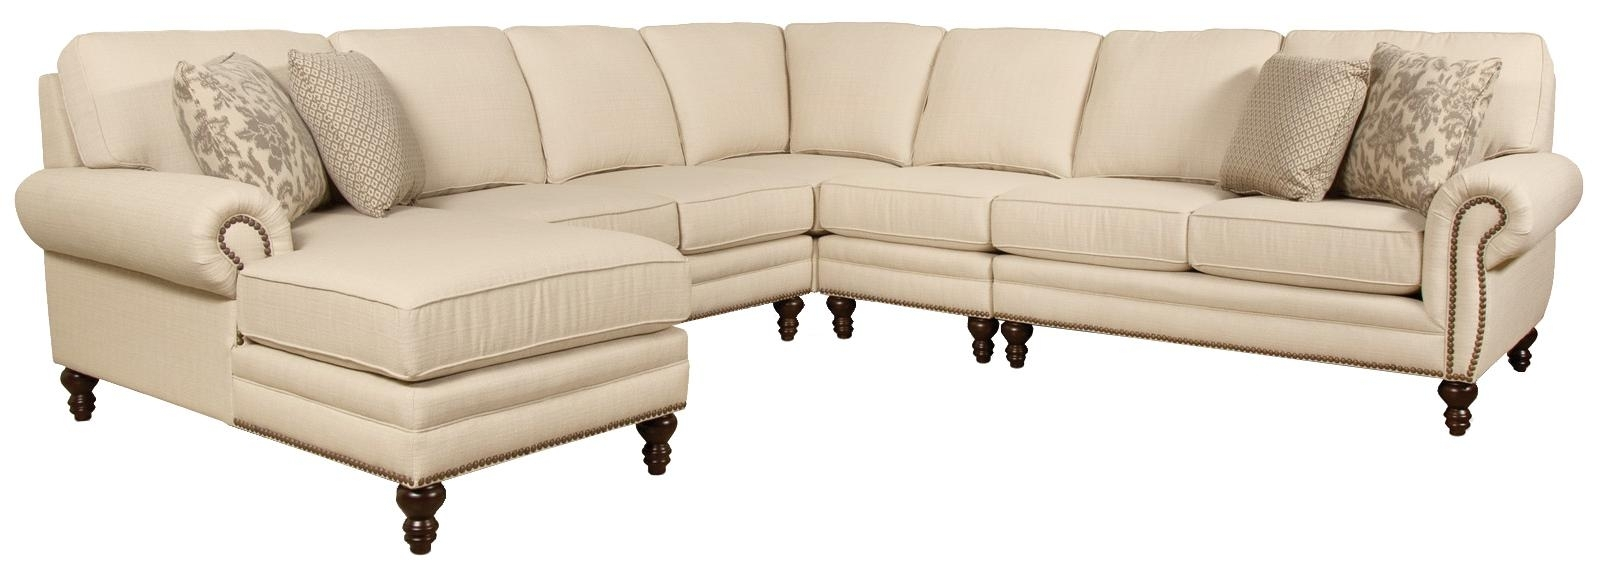 England Amix Seven Seat Sectional Sofa With Left Side Chaise   Ahfa Regarding Sectional Sofas With Nailhead Trim (Photo 5 of 10)